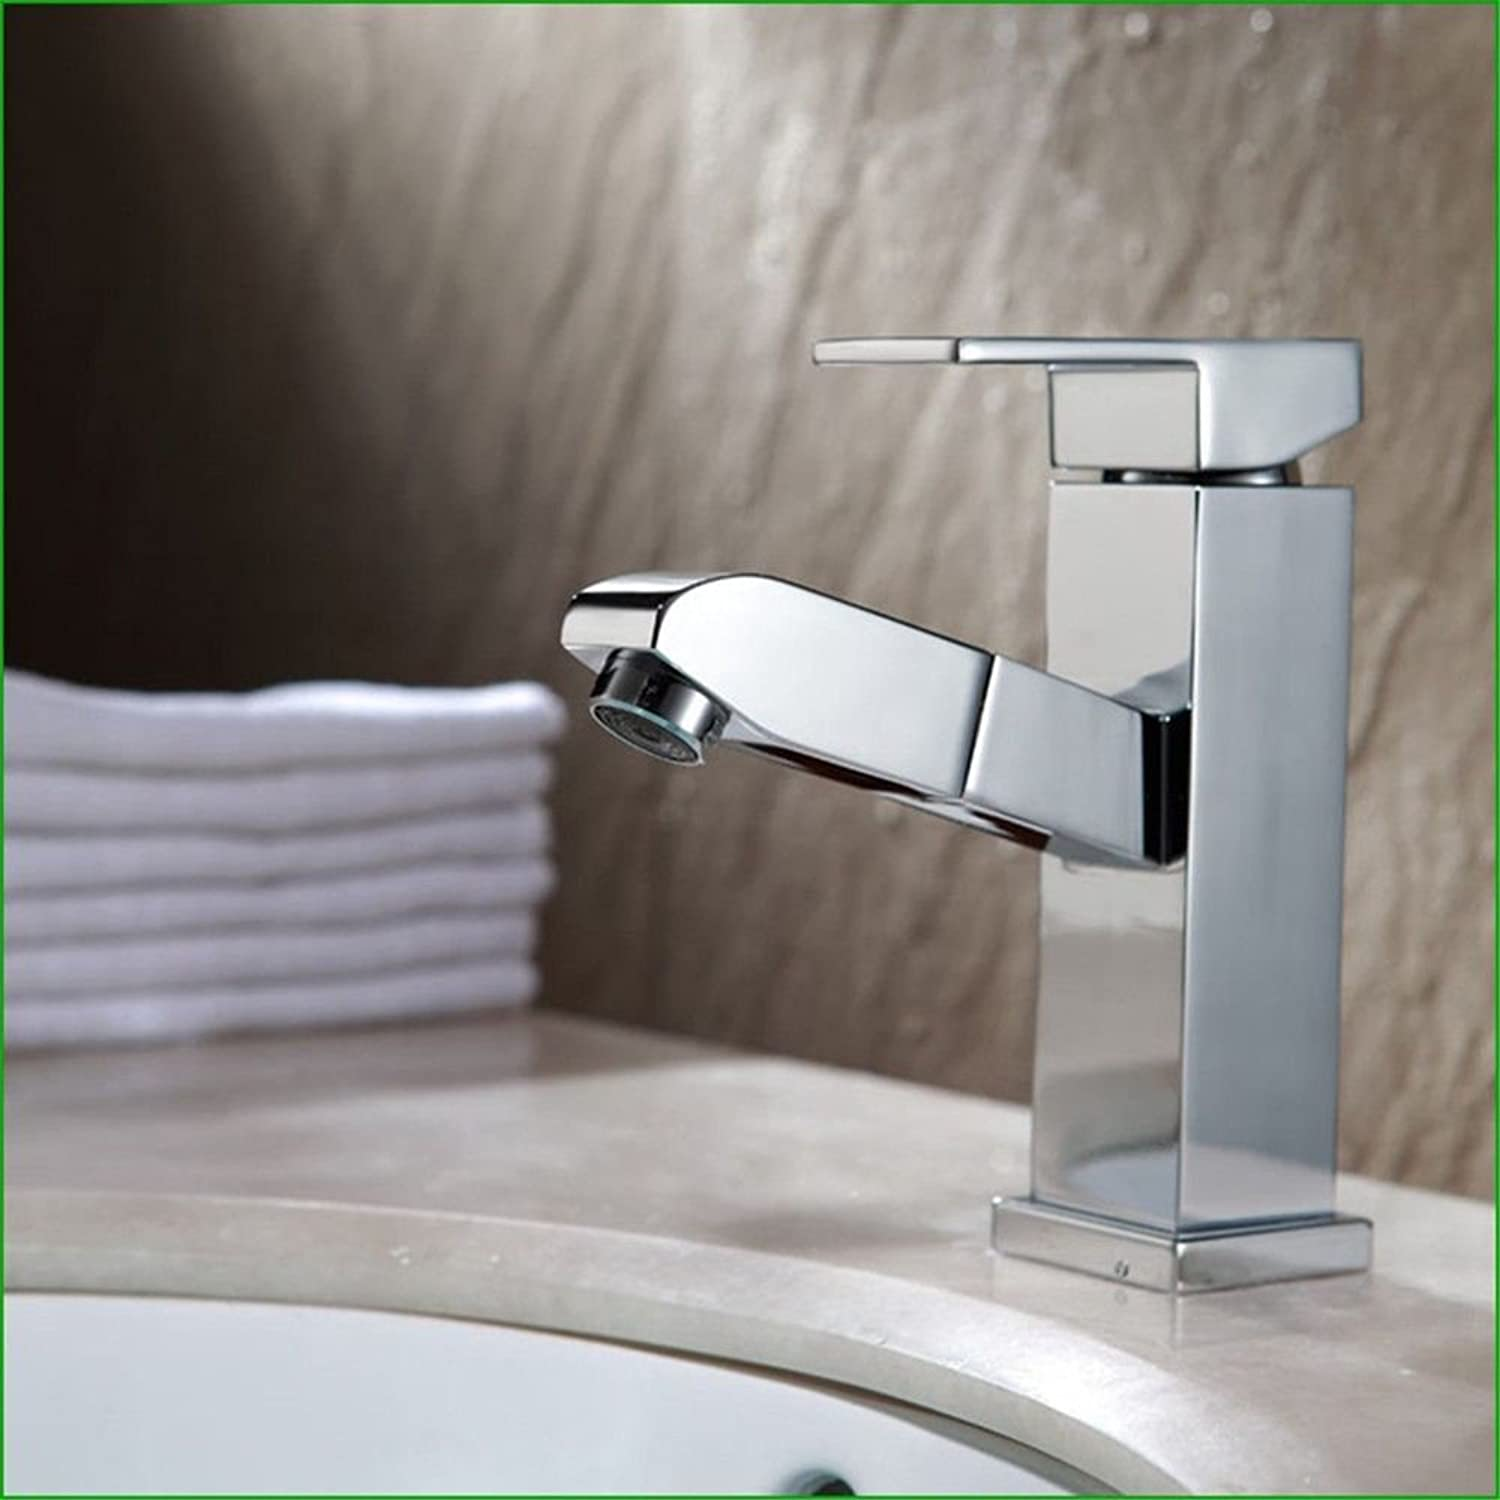 Hlluya Professional Sink Mixer Tap Kitchen Faucet The Brass chrome bathroom sink pull-down faucet hot and cold water basin mixer taps,